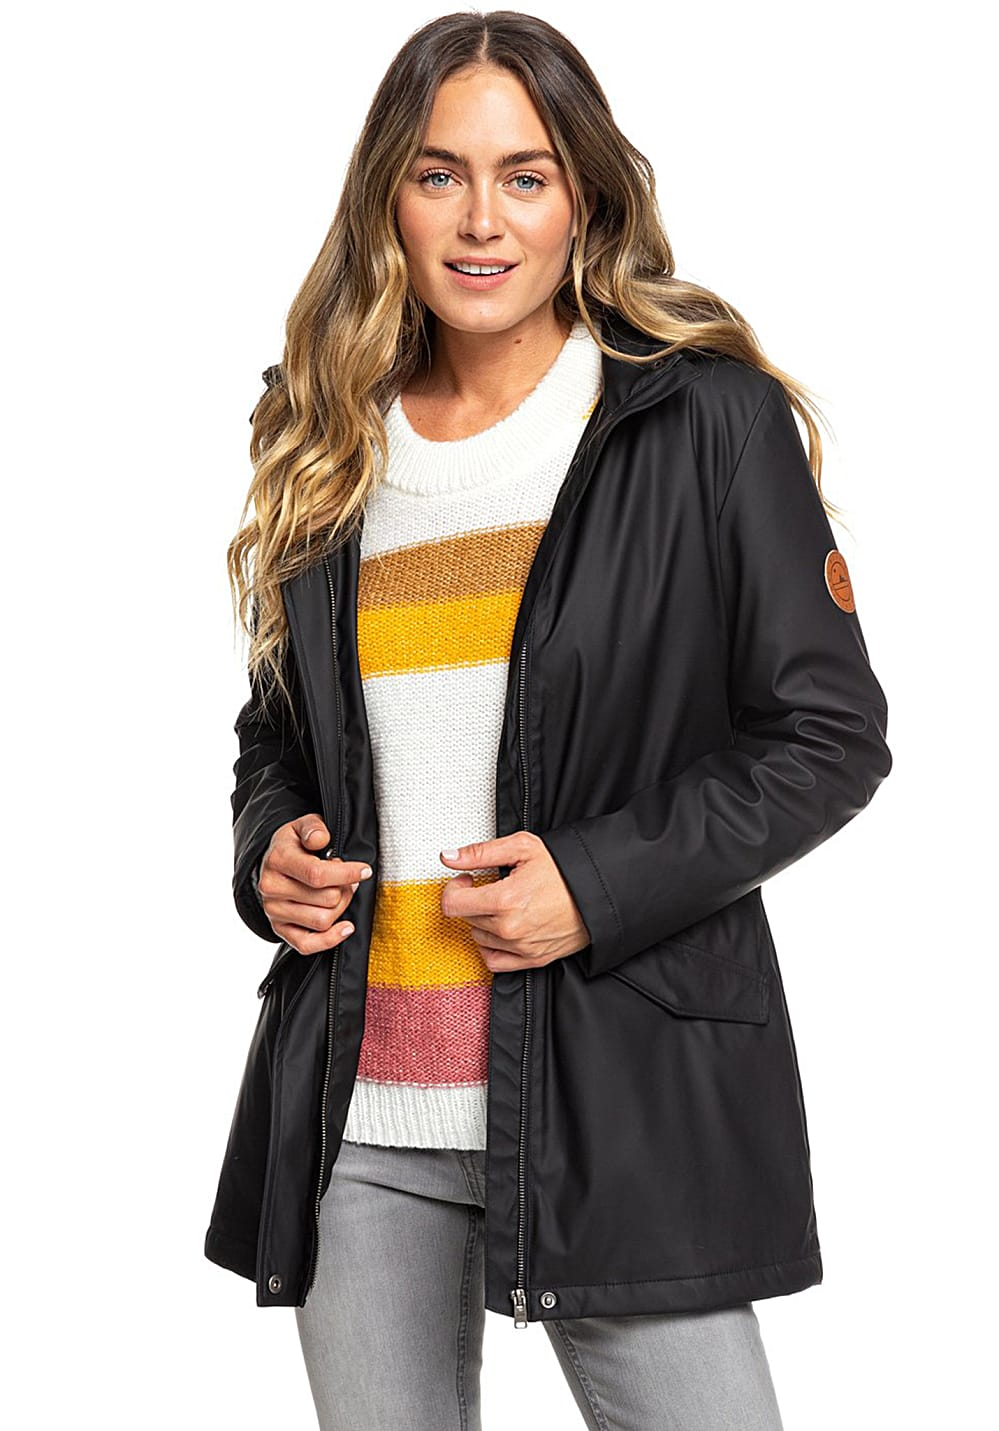 Jacken - Roxy Downtown Callin Jacke für Damen Schwarz  - Onlineshop Planet Sports